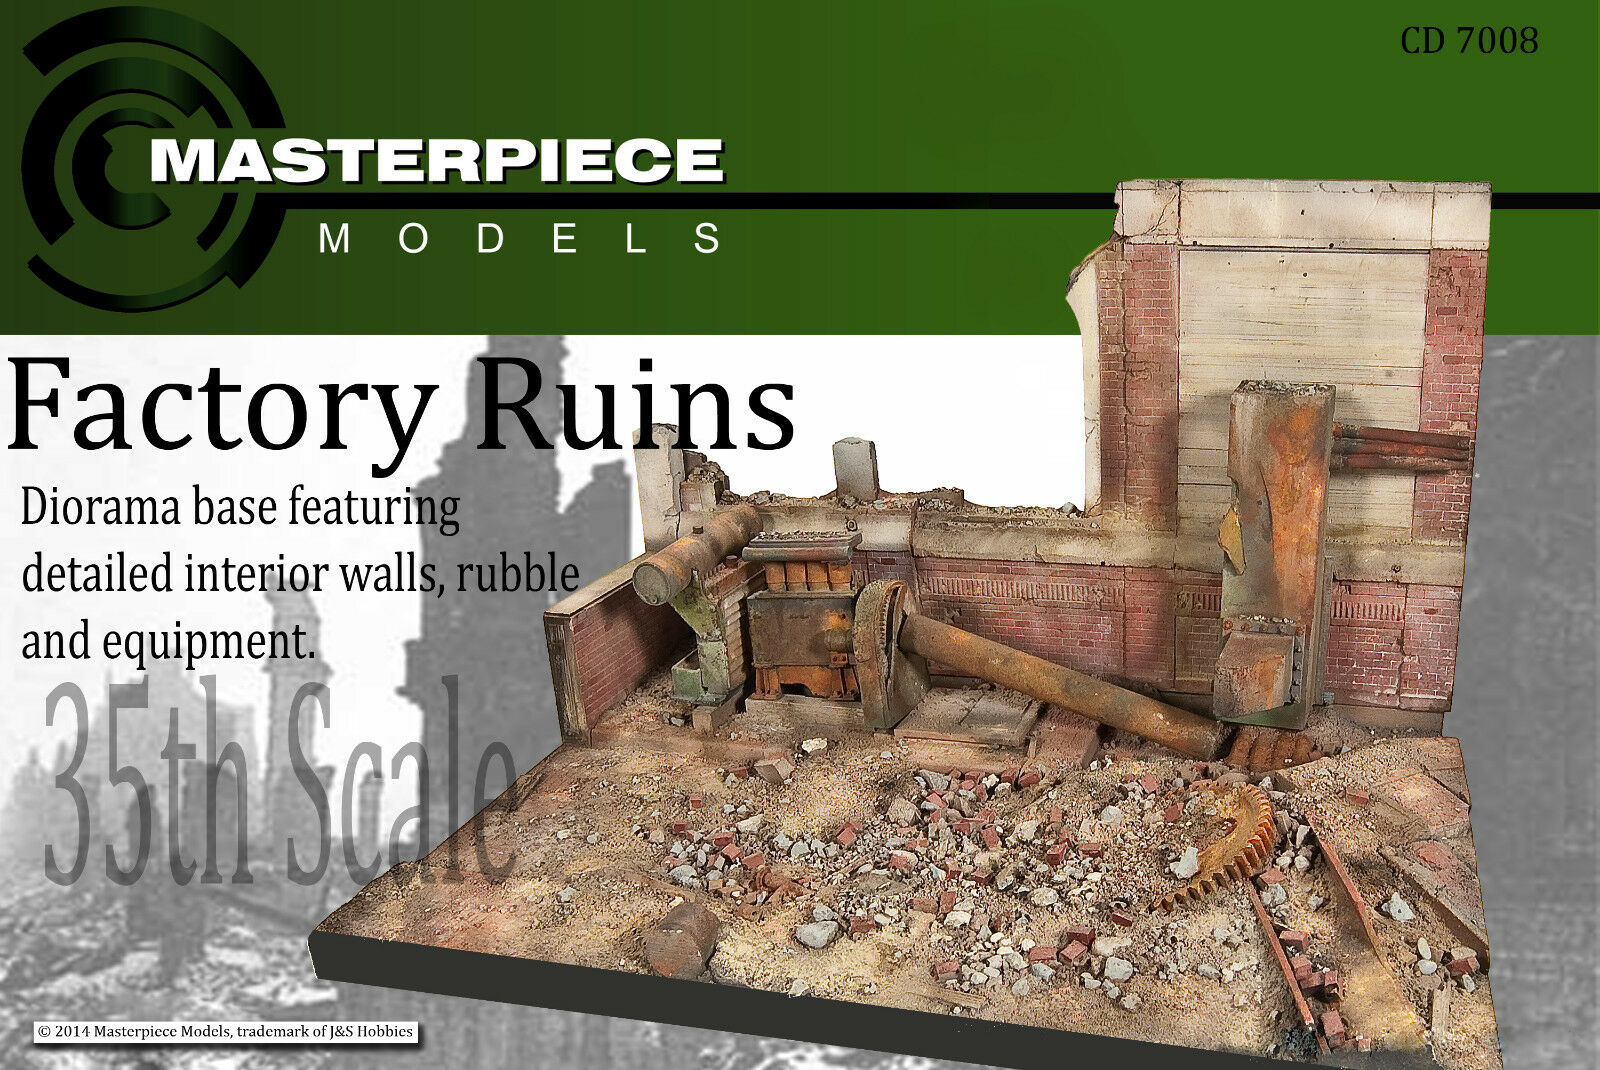 1 35th scale CD7008 Stalingrad factory ruins